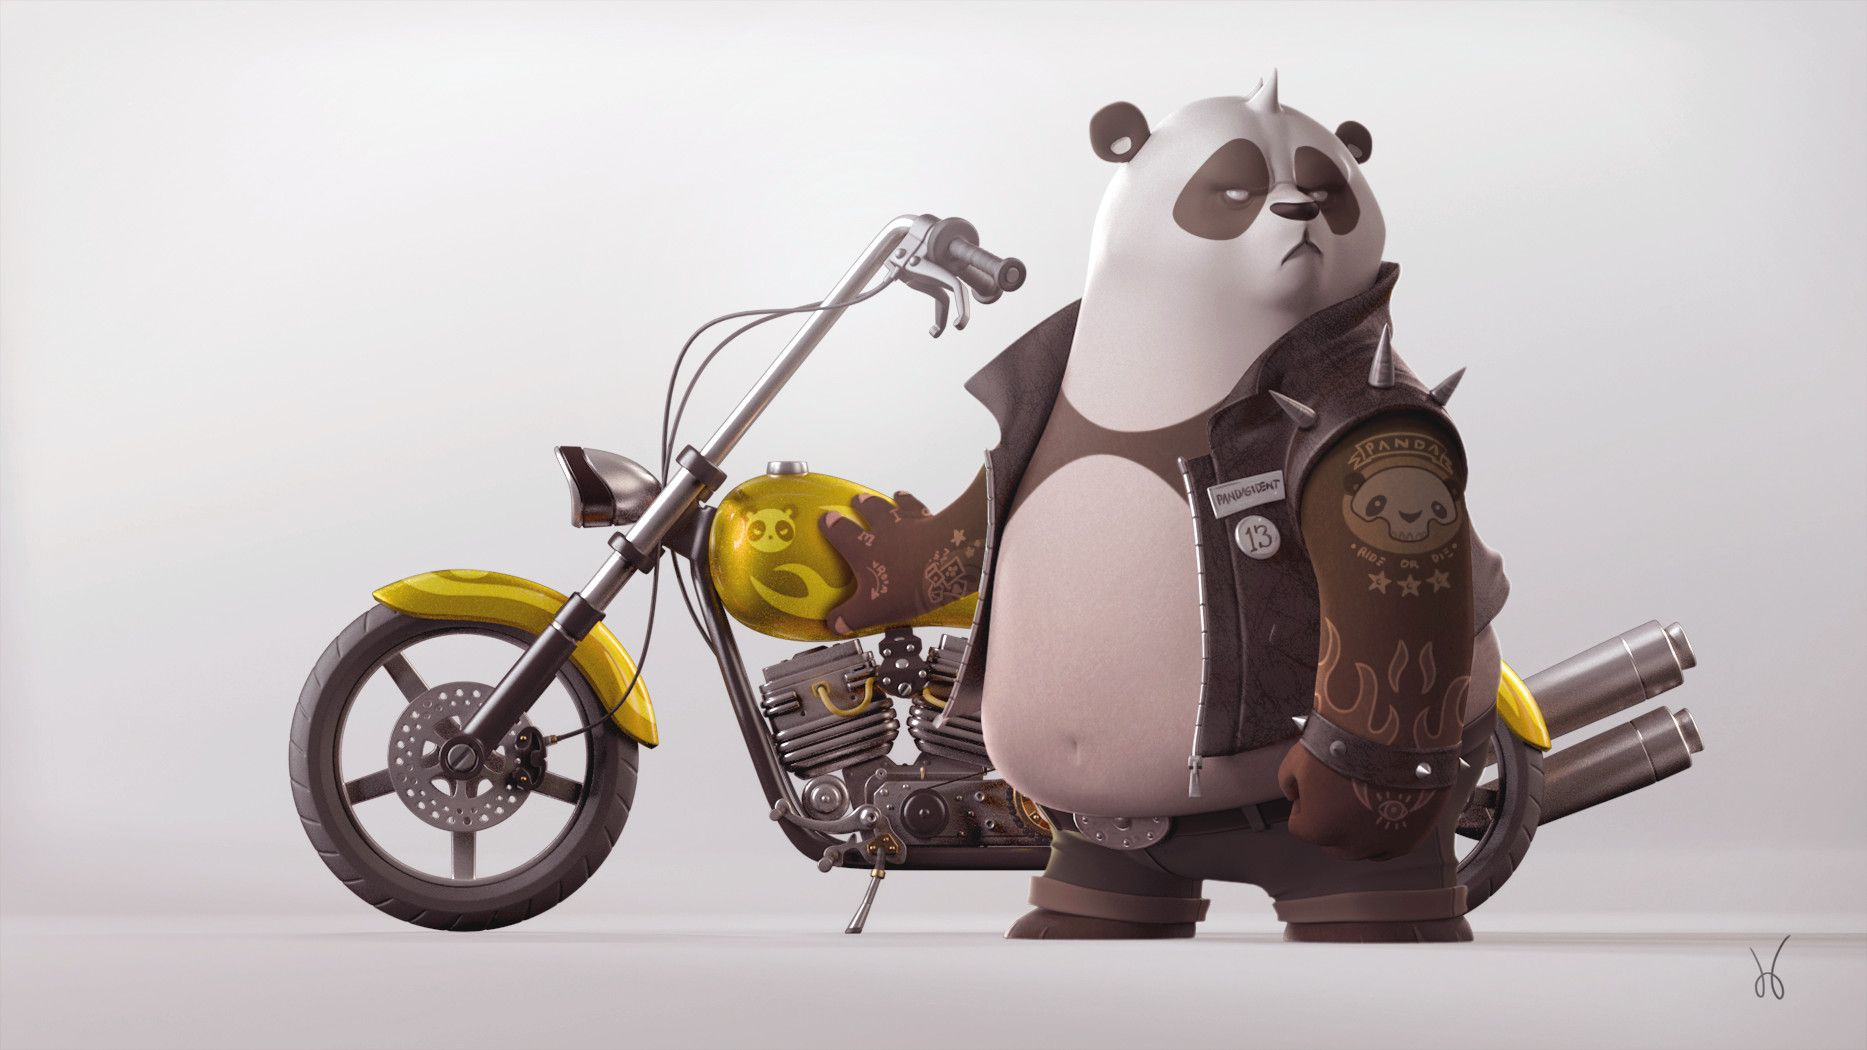 childrens bikers deliver bears - HD1867×1050